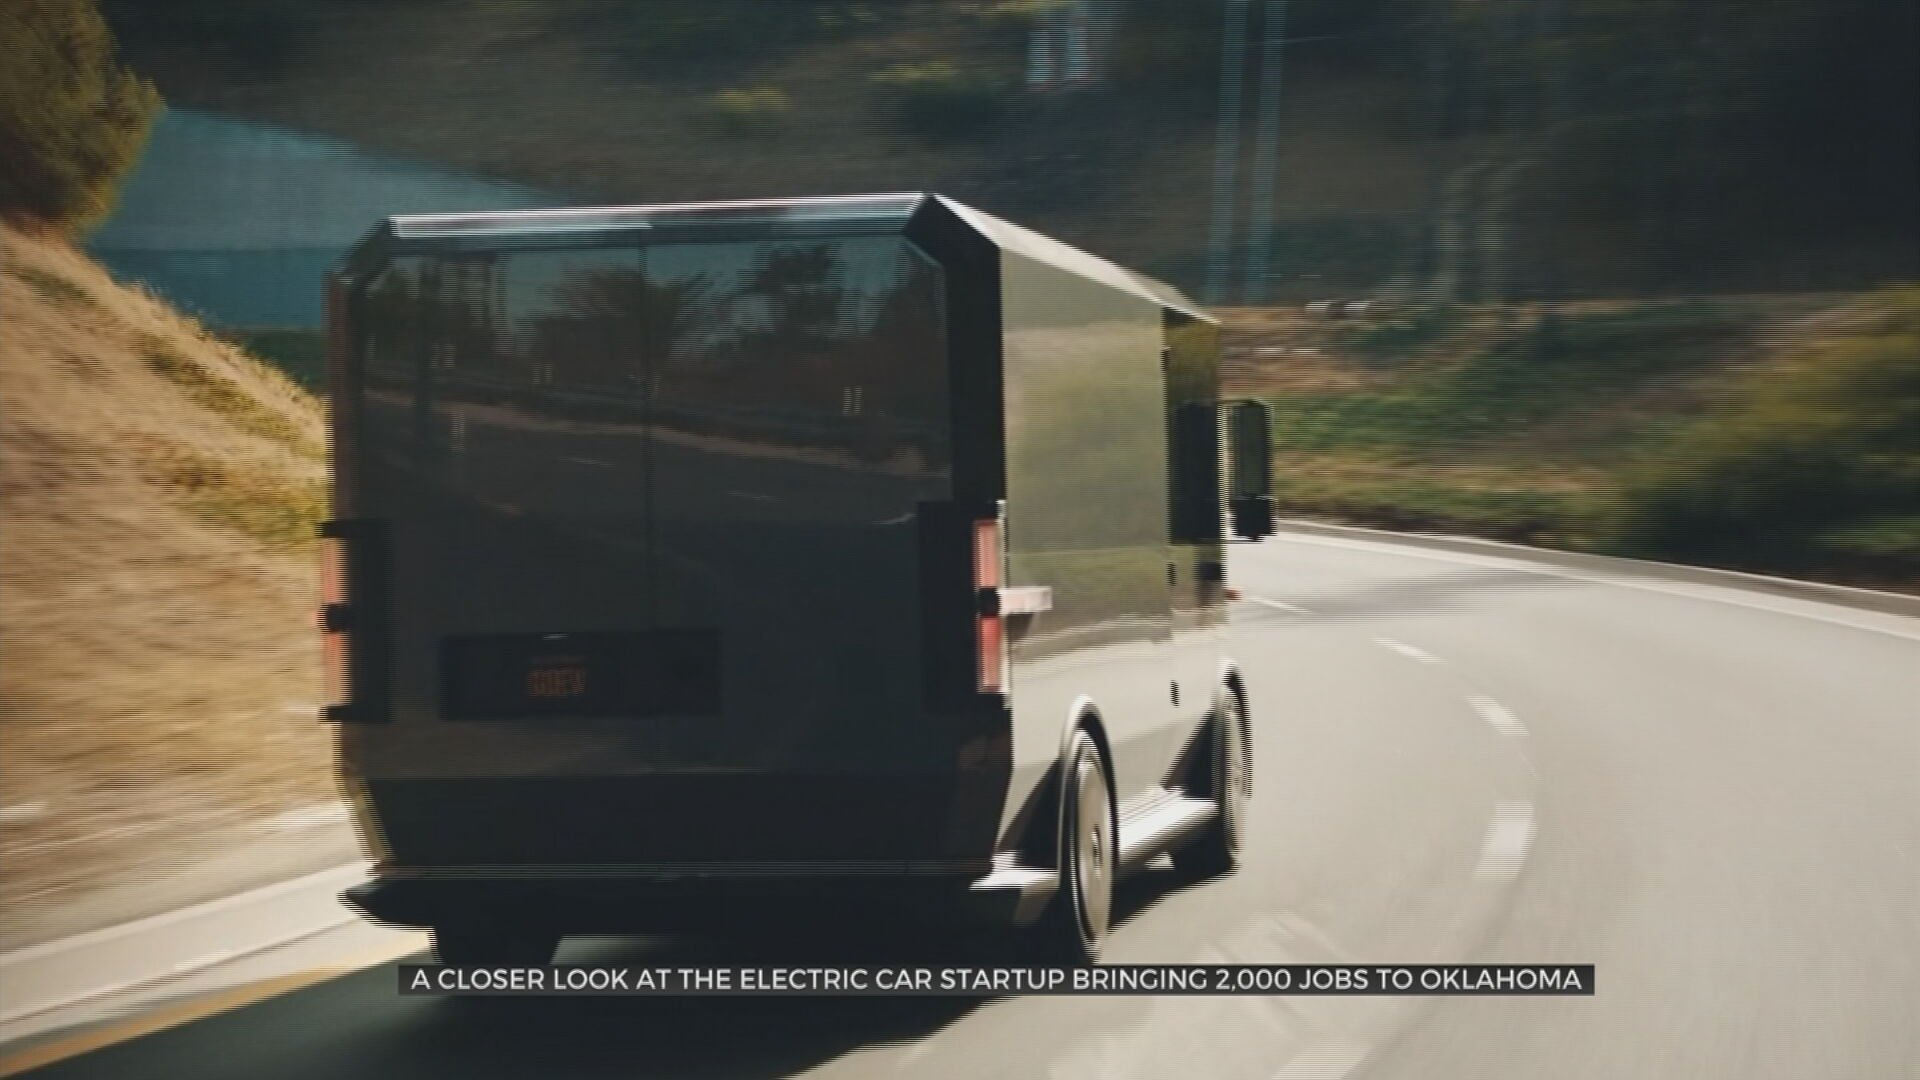 Meet Canoo, The Electric Vehicle Startup Building Its First Facility In Pryor